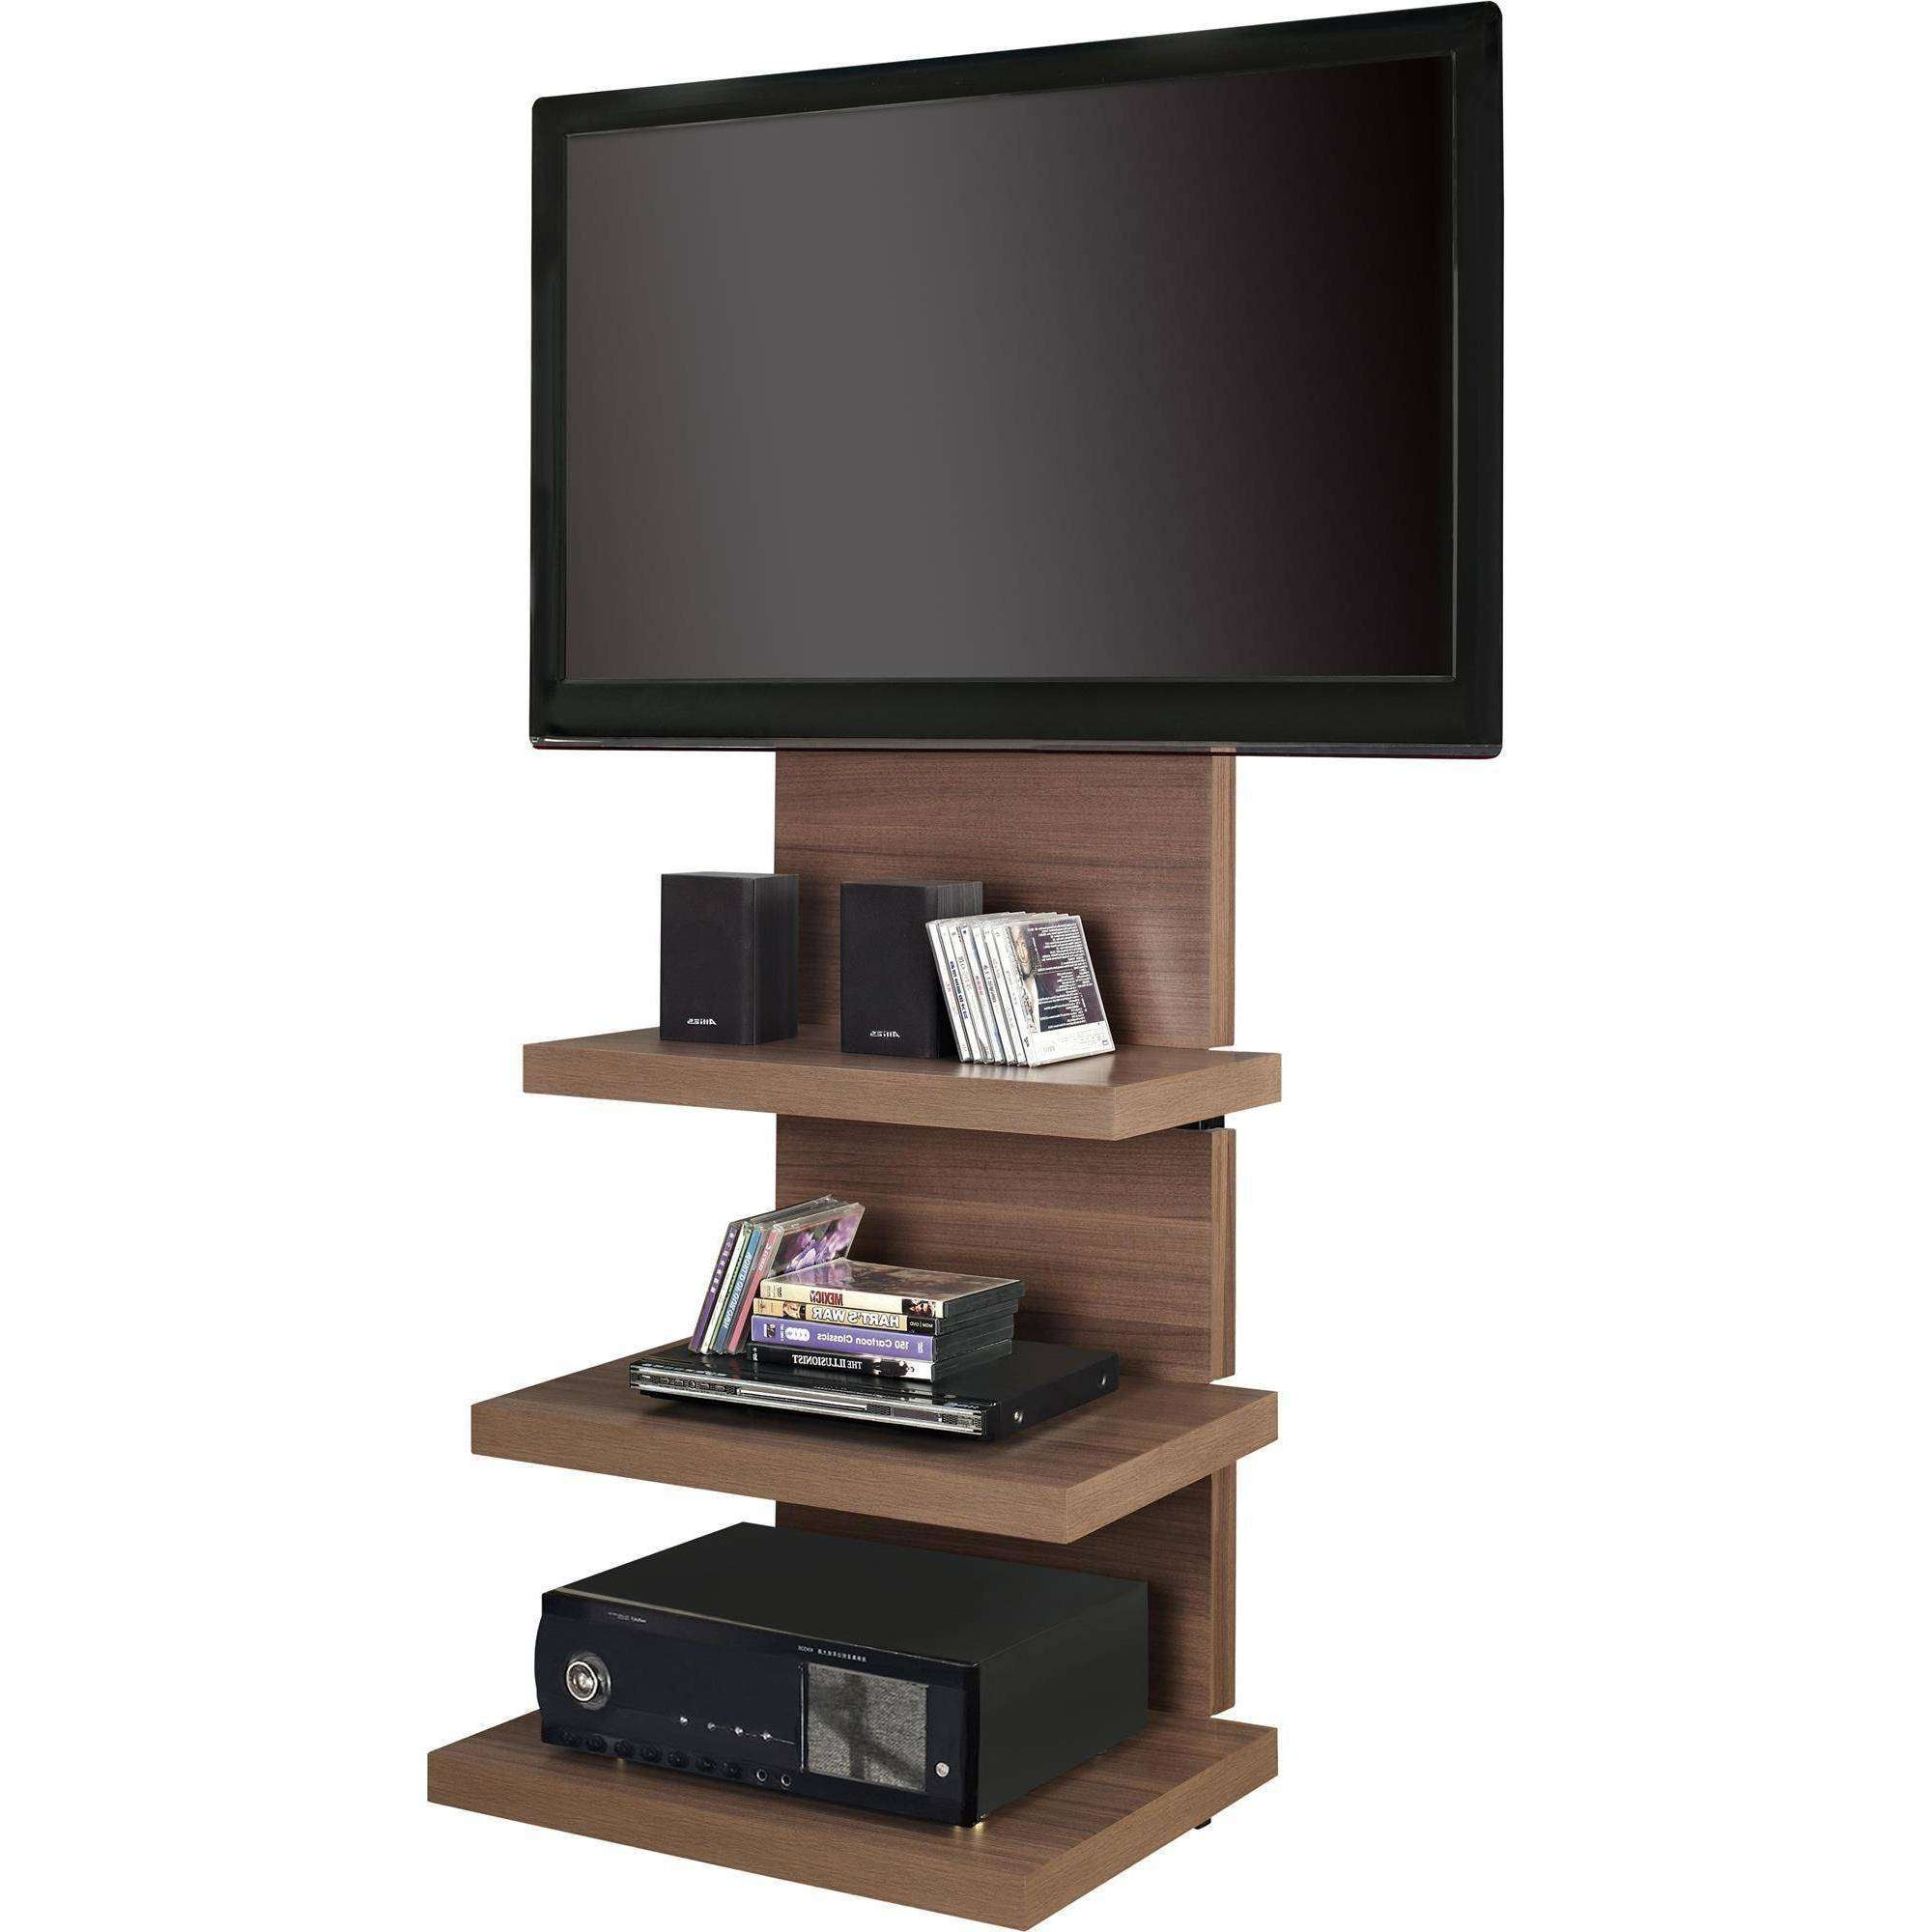 Tv Stand : Da1De92Aaf0E 1 Marvelous Tv Stand With Pictures Design Throughout Cordoba Tv Stands (View 14 of 15)